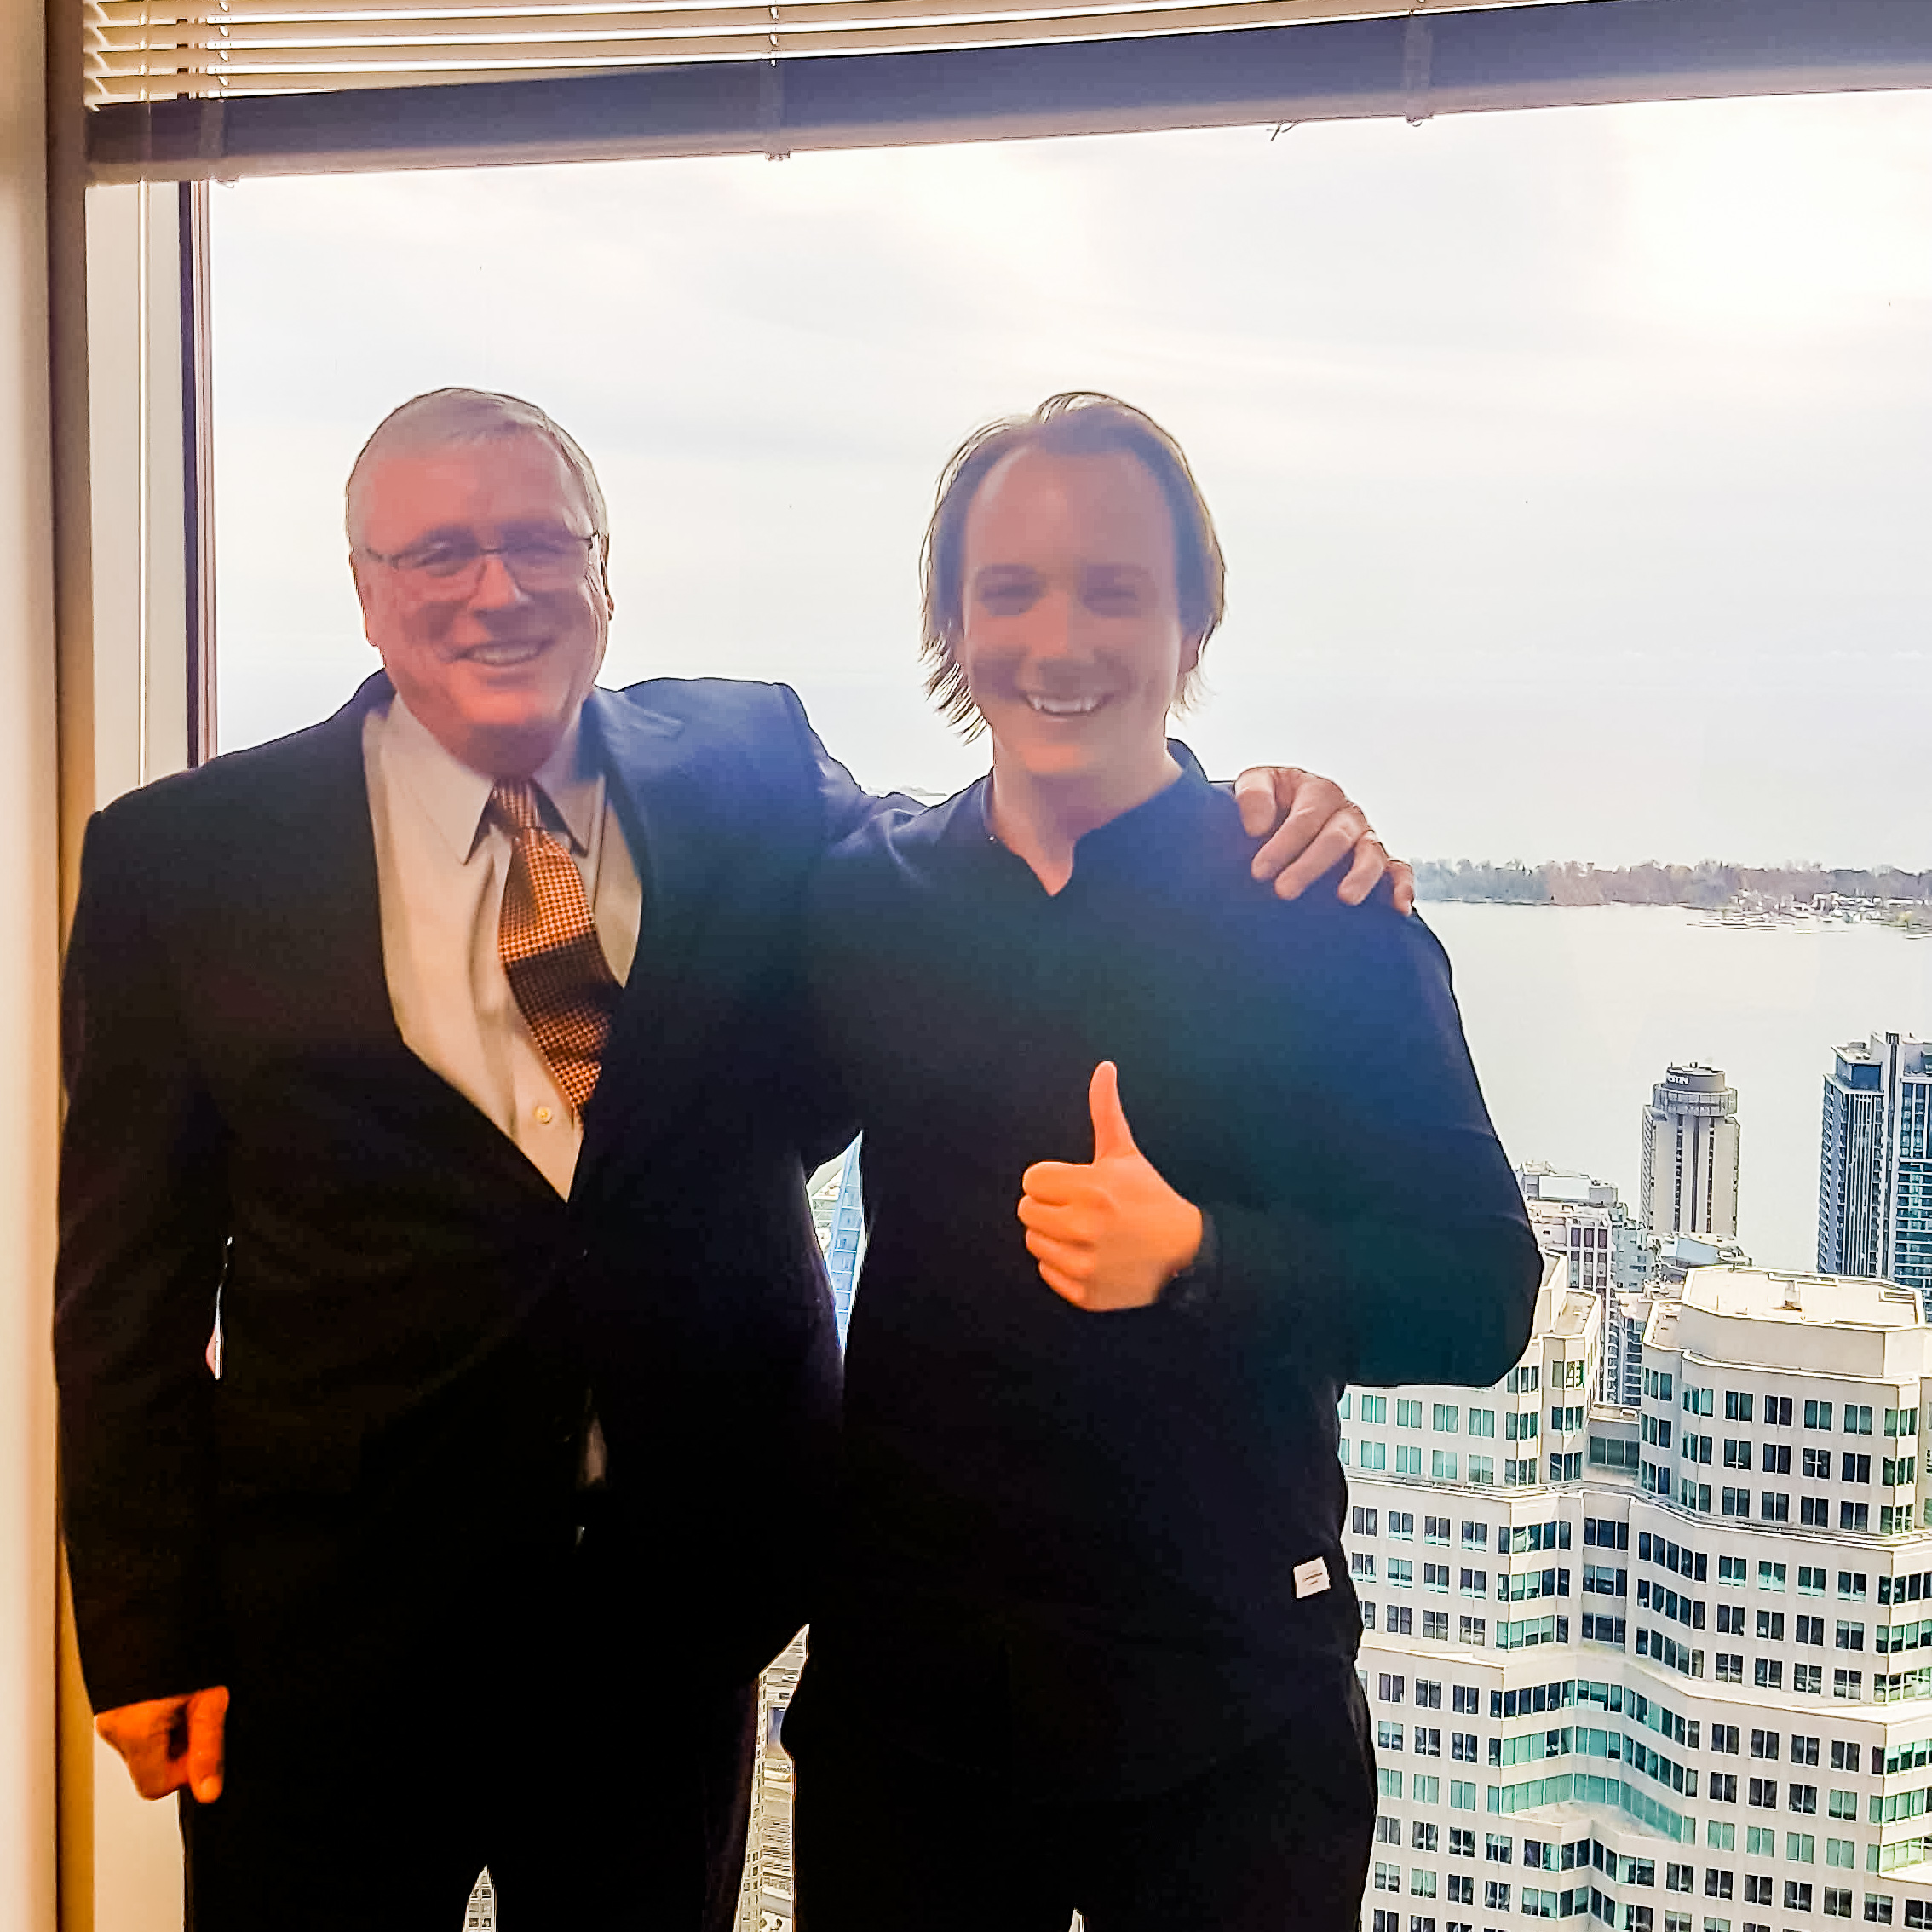 GetintheLoop CEO Matt Crowell (right) with former Canadian Western Bank CEO Larry Pollock, who helped developed the in-house financing program for GetintheLoop Local.